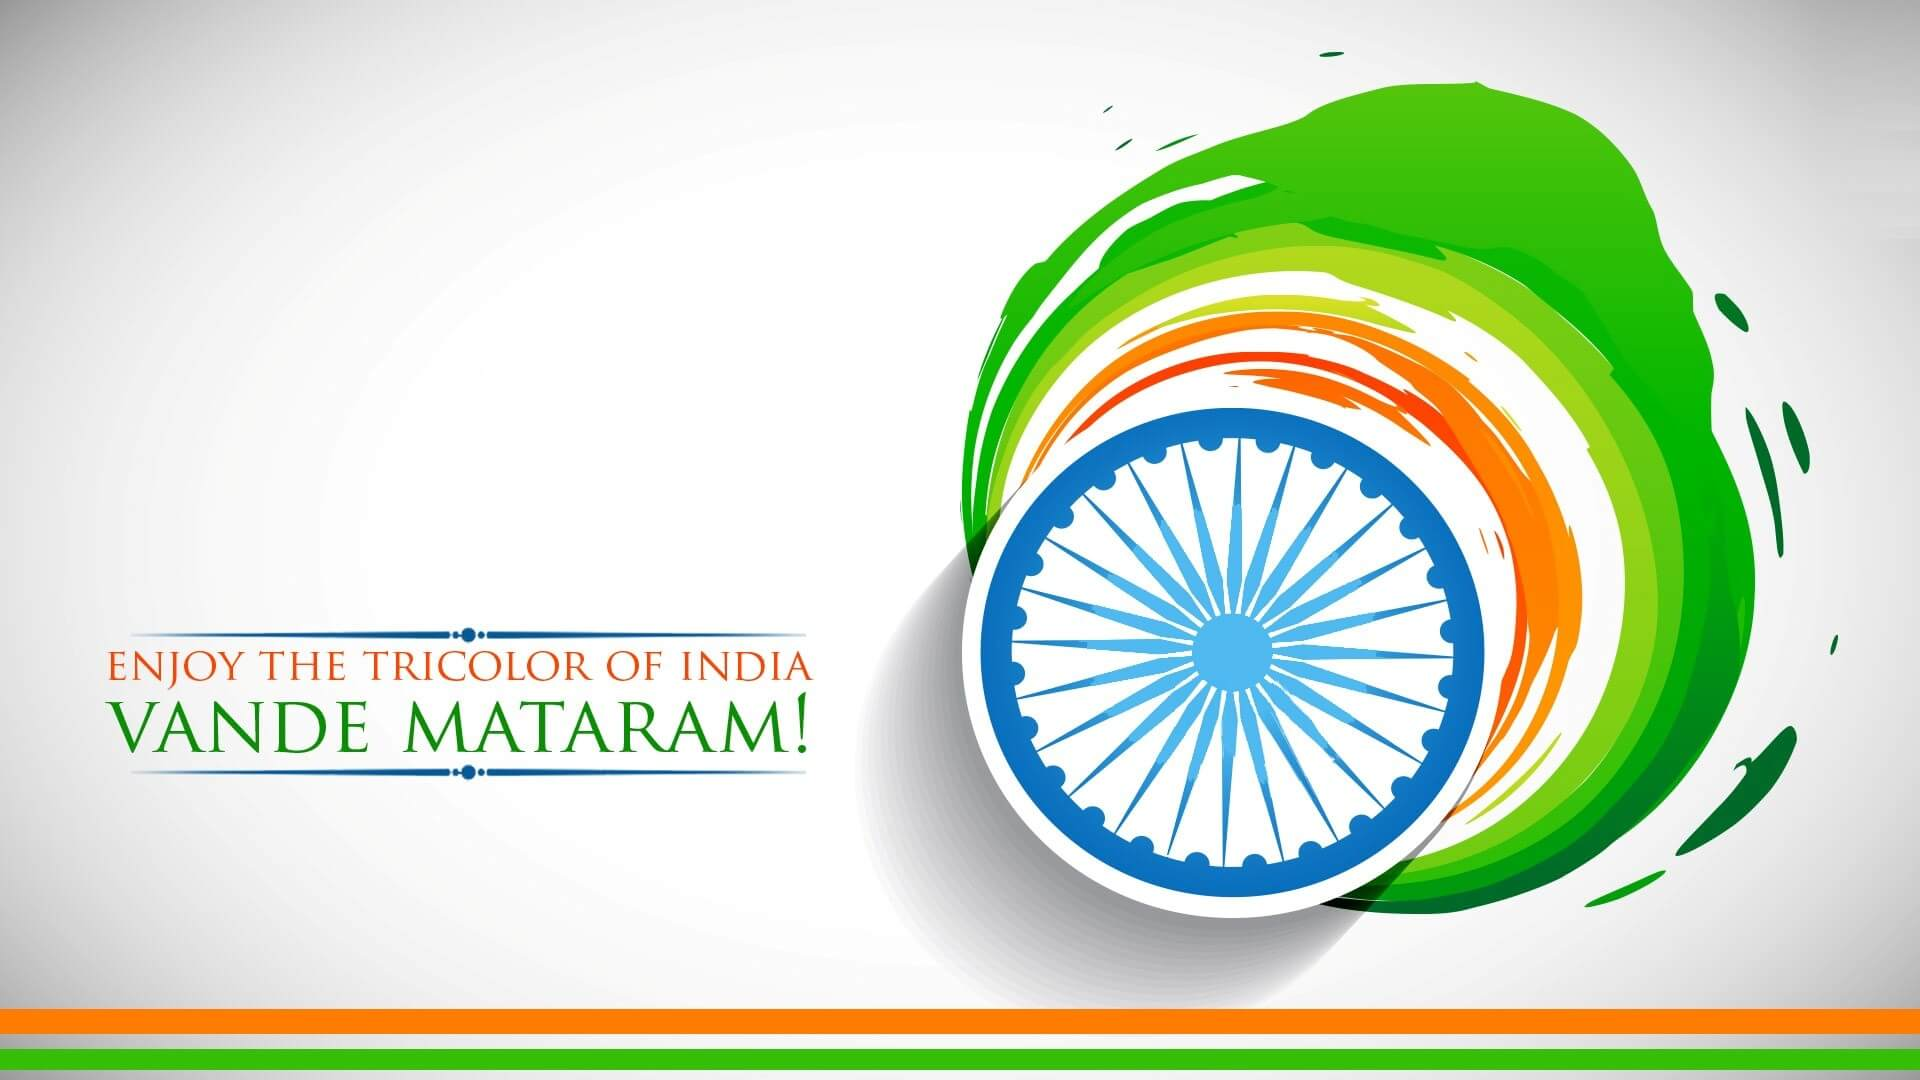 india independence day 15th august vande mataram